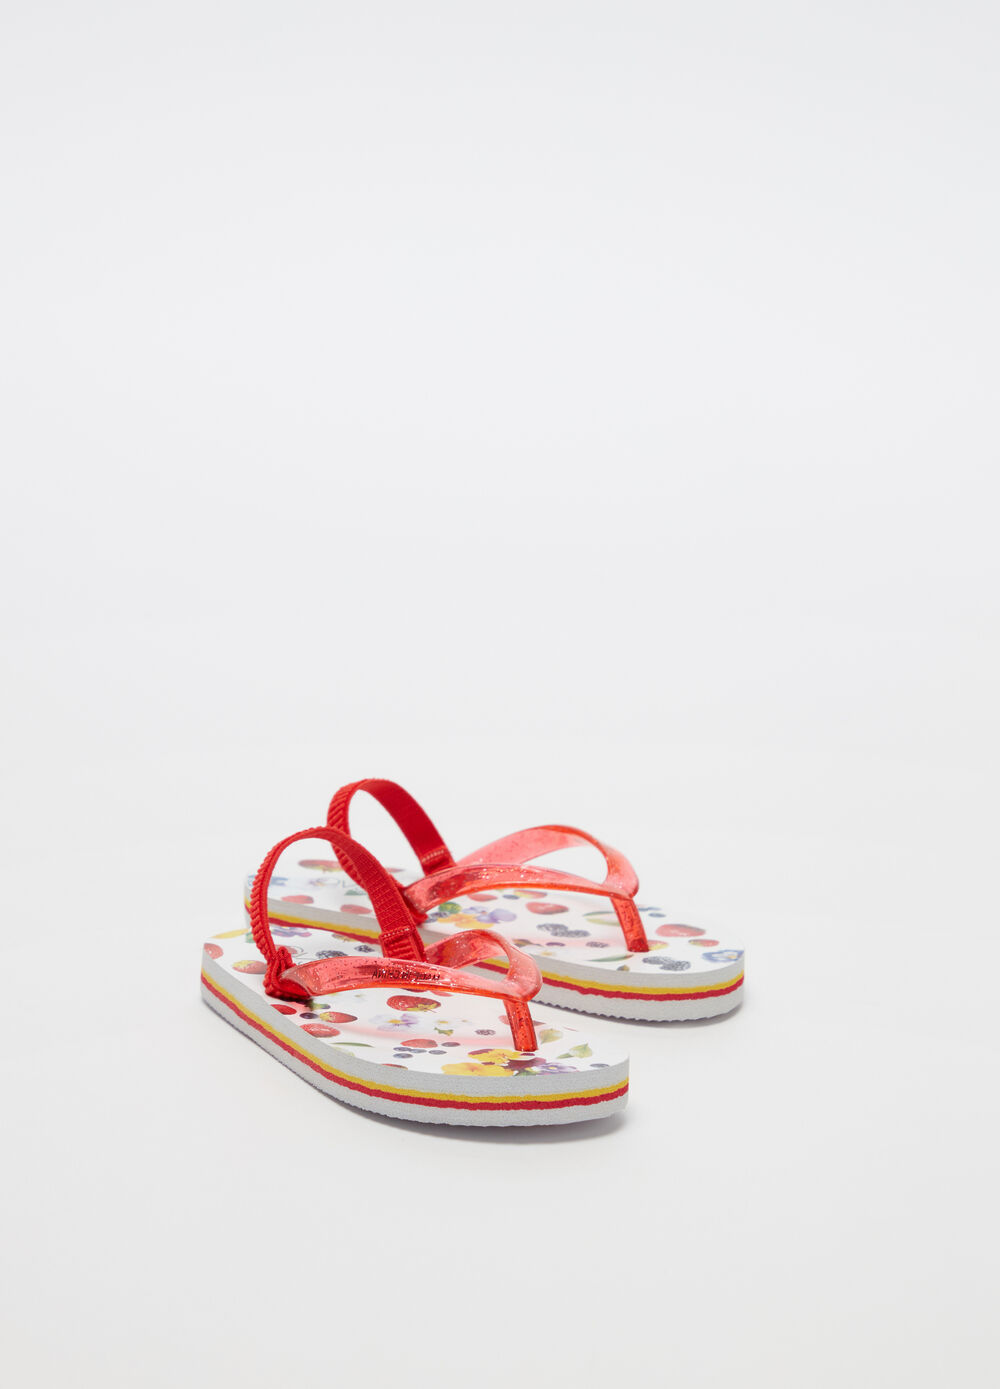 Thong sandals with glitter laces and pattern